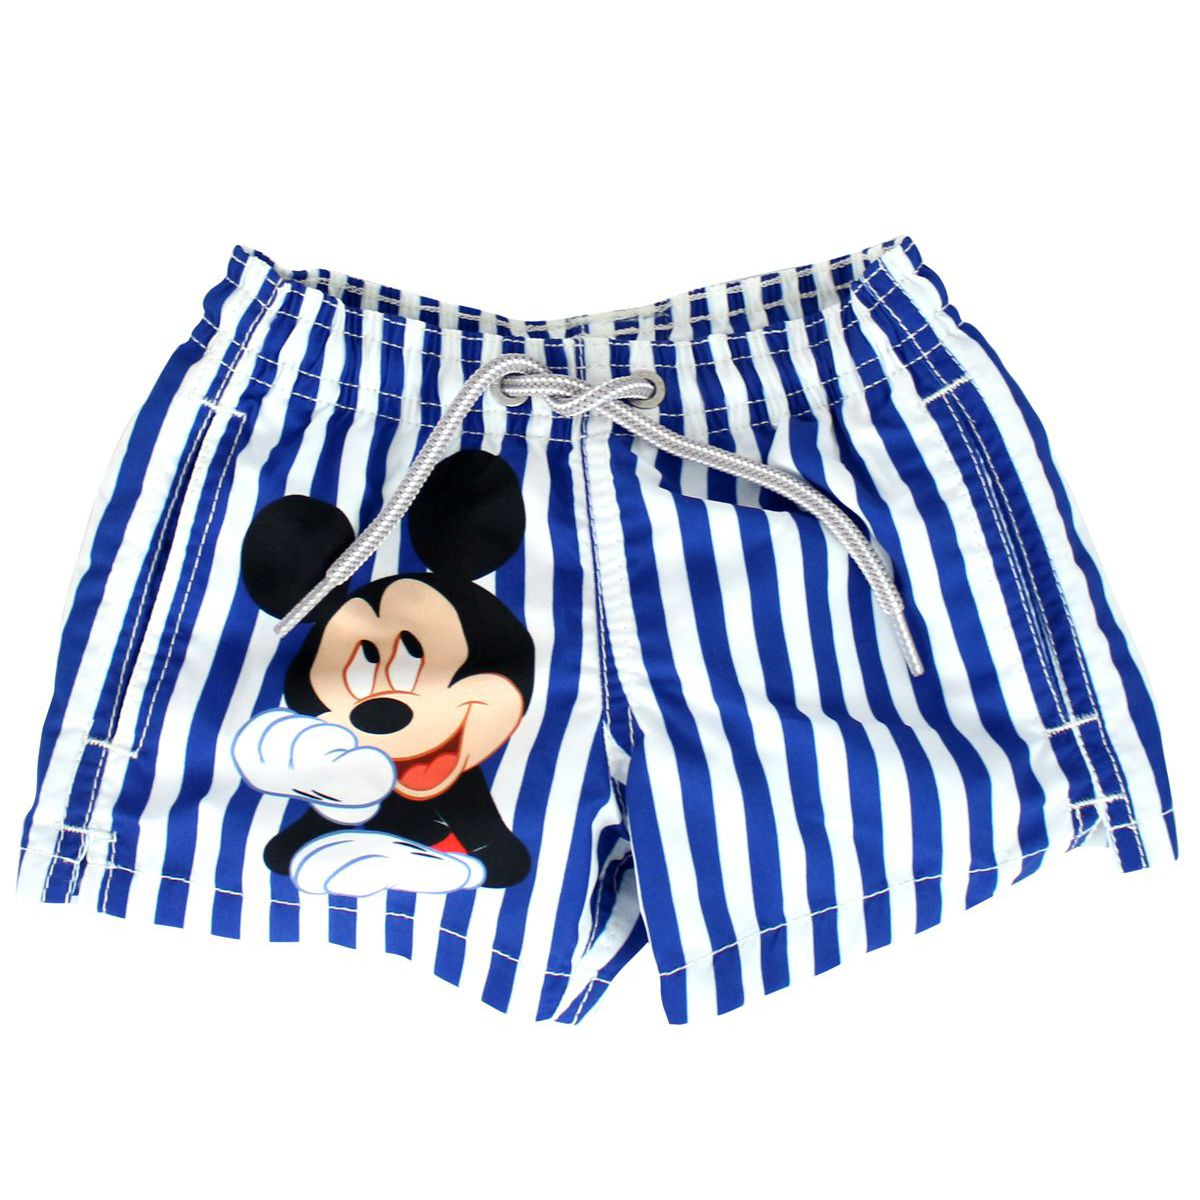 Jean Mickey Relax Costume Blue / white MC2 Saint Barth